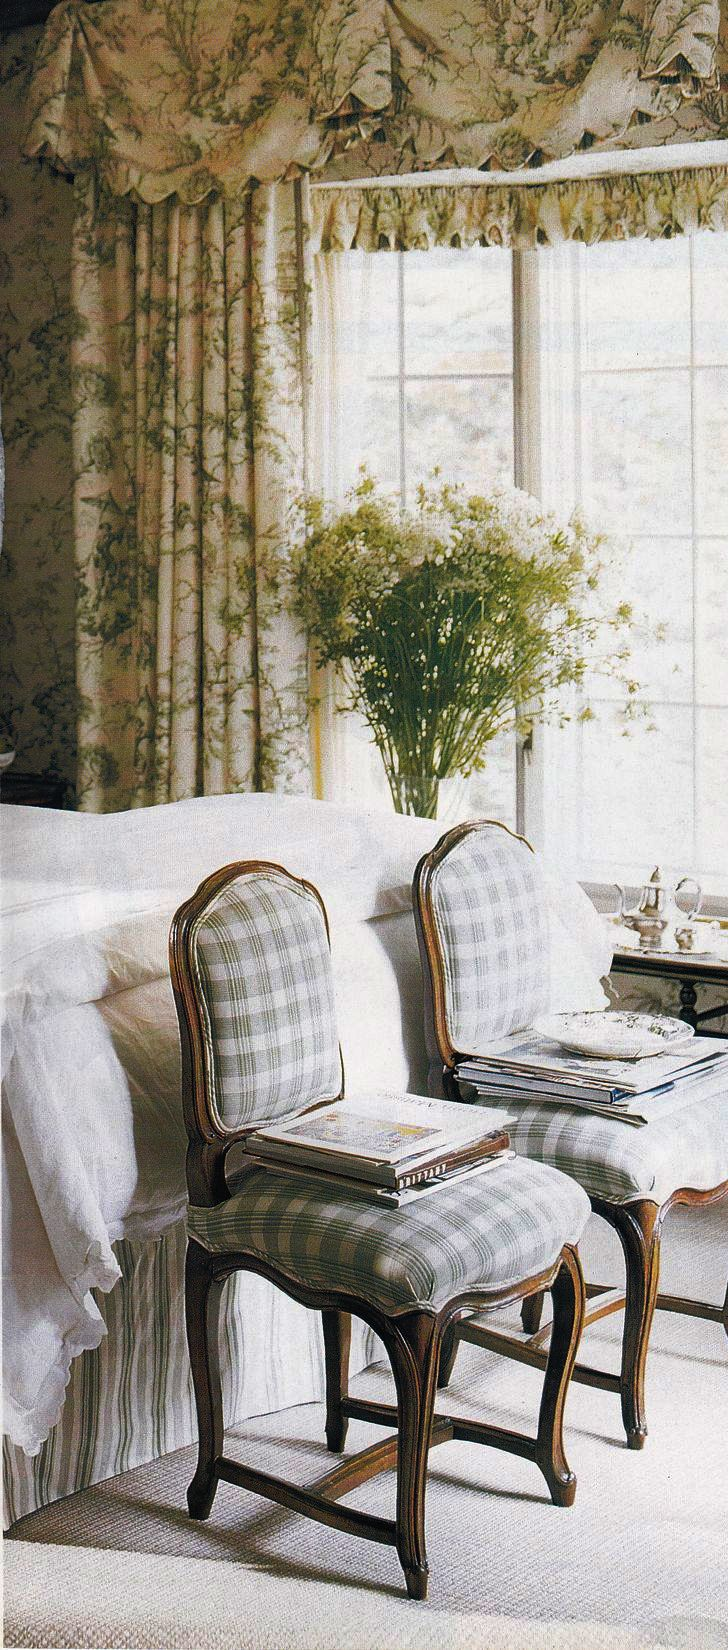 Chairs instead of a bench. Dan Carithers, Virginia Country House. Southern Accents